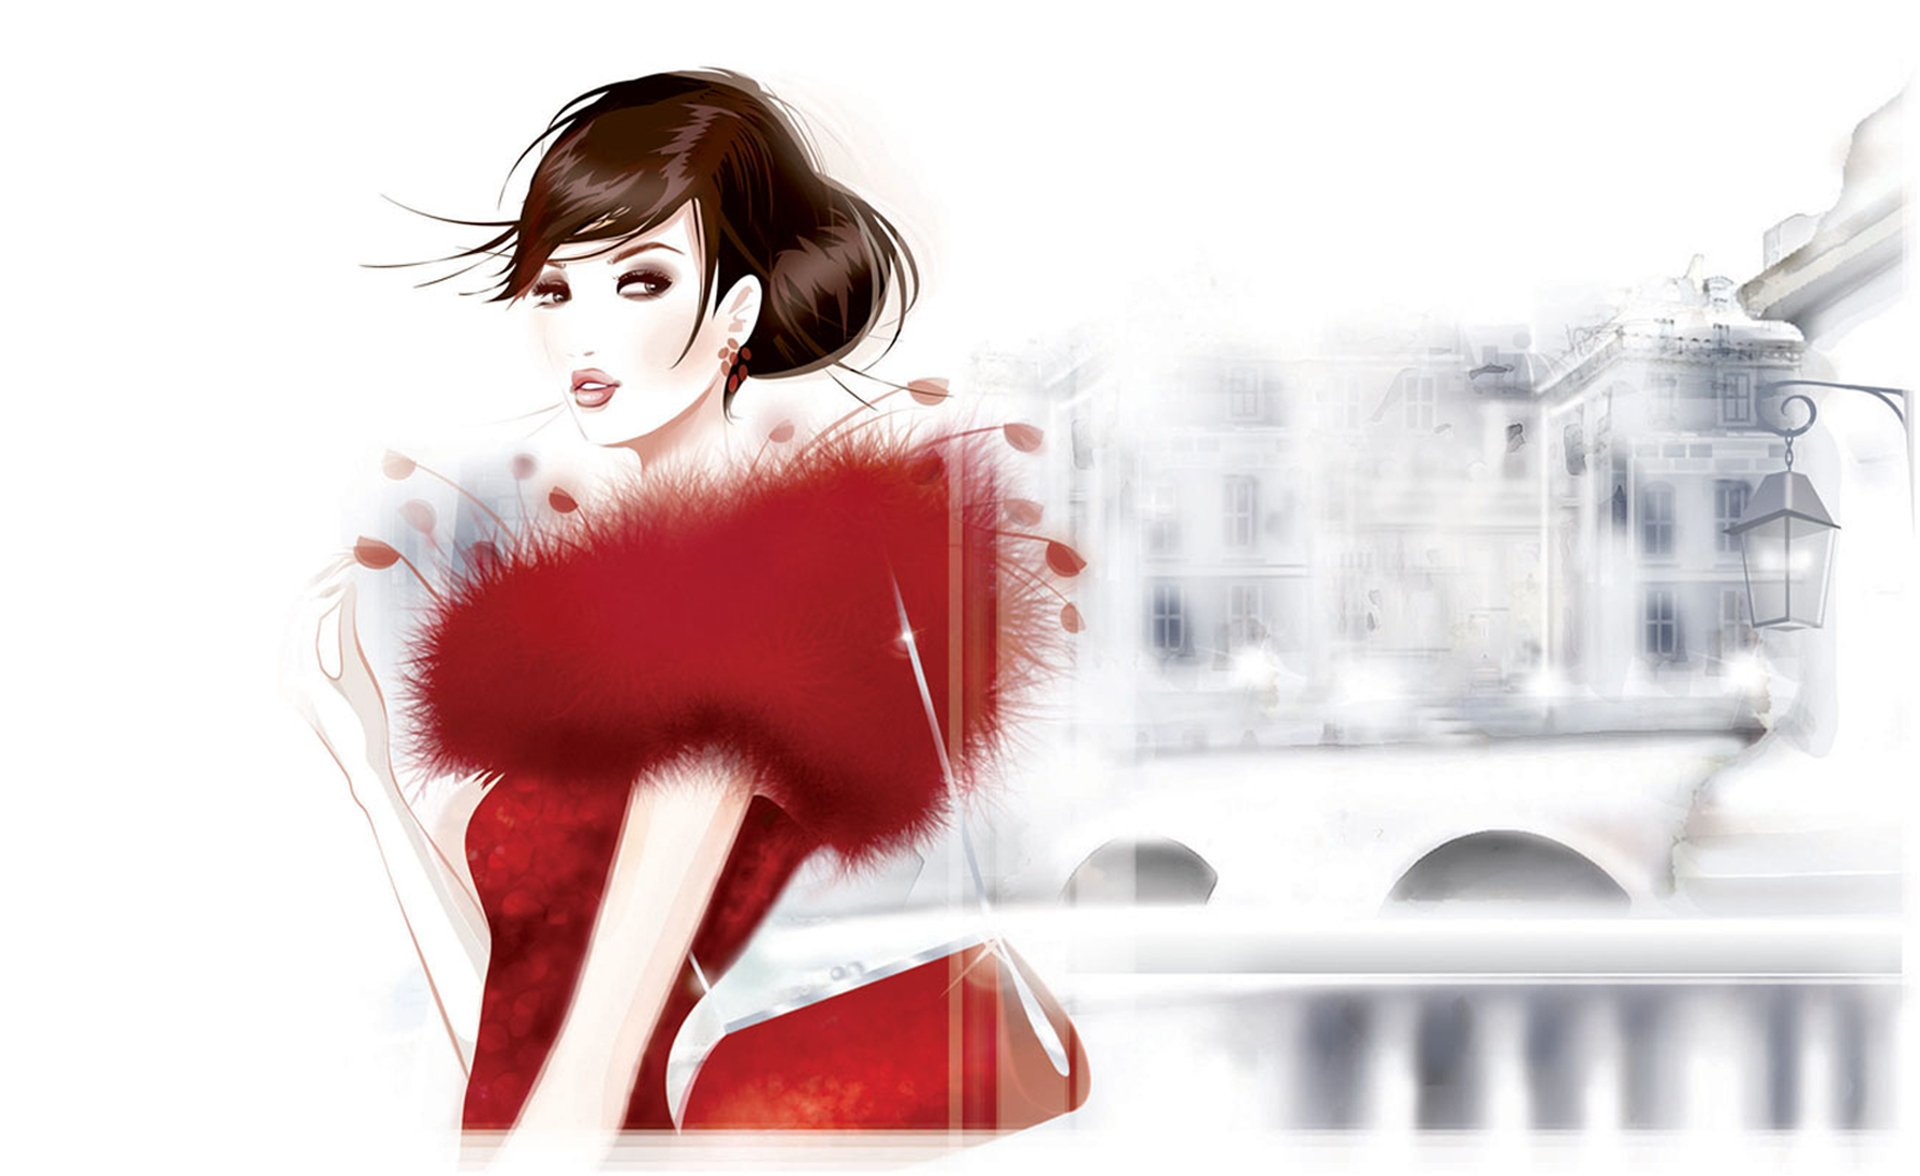 / Backgrounds for fashion illustrations